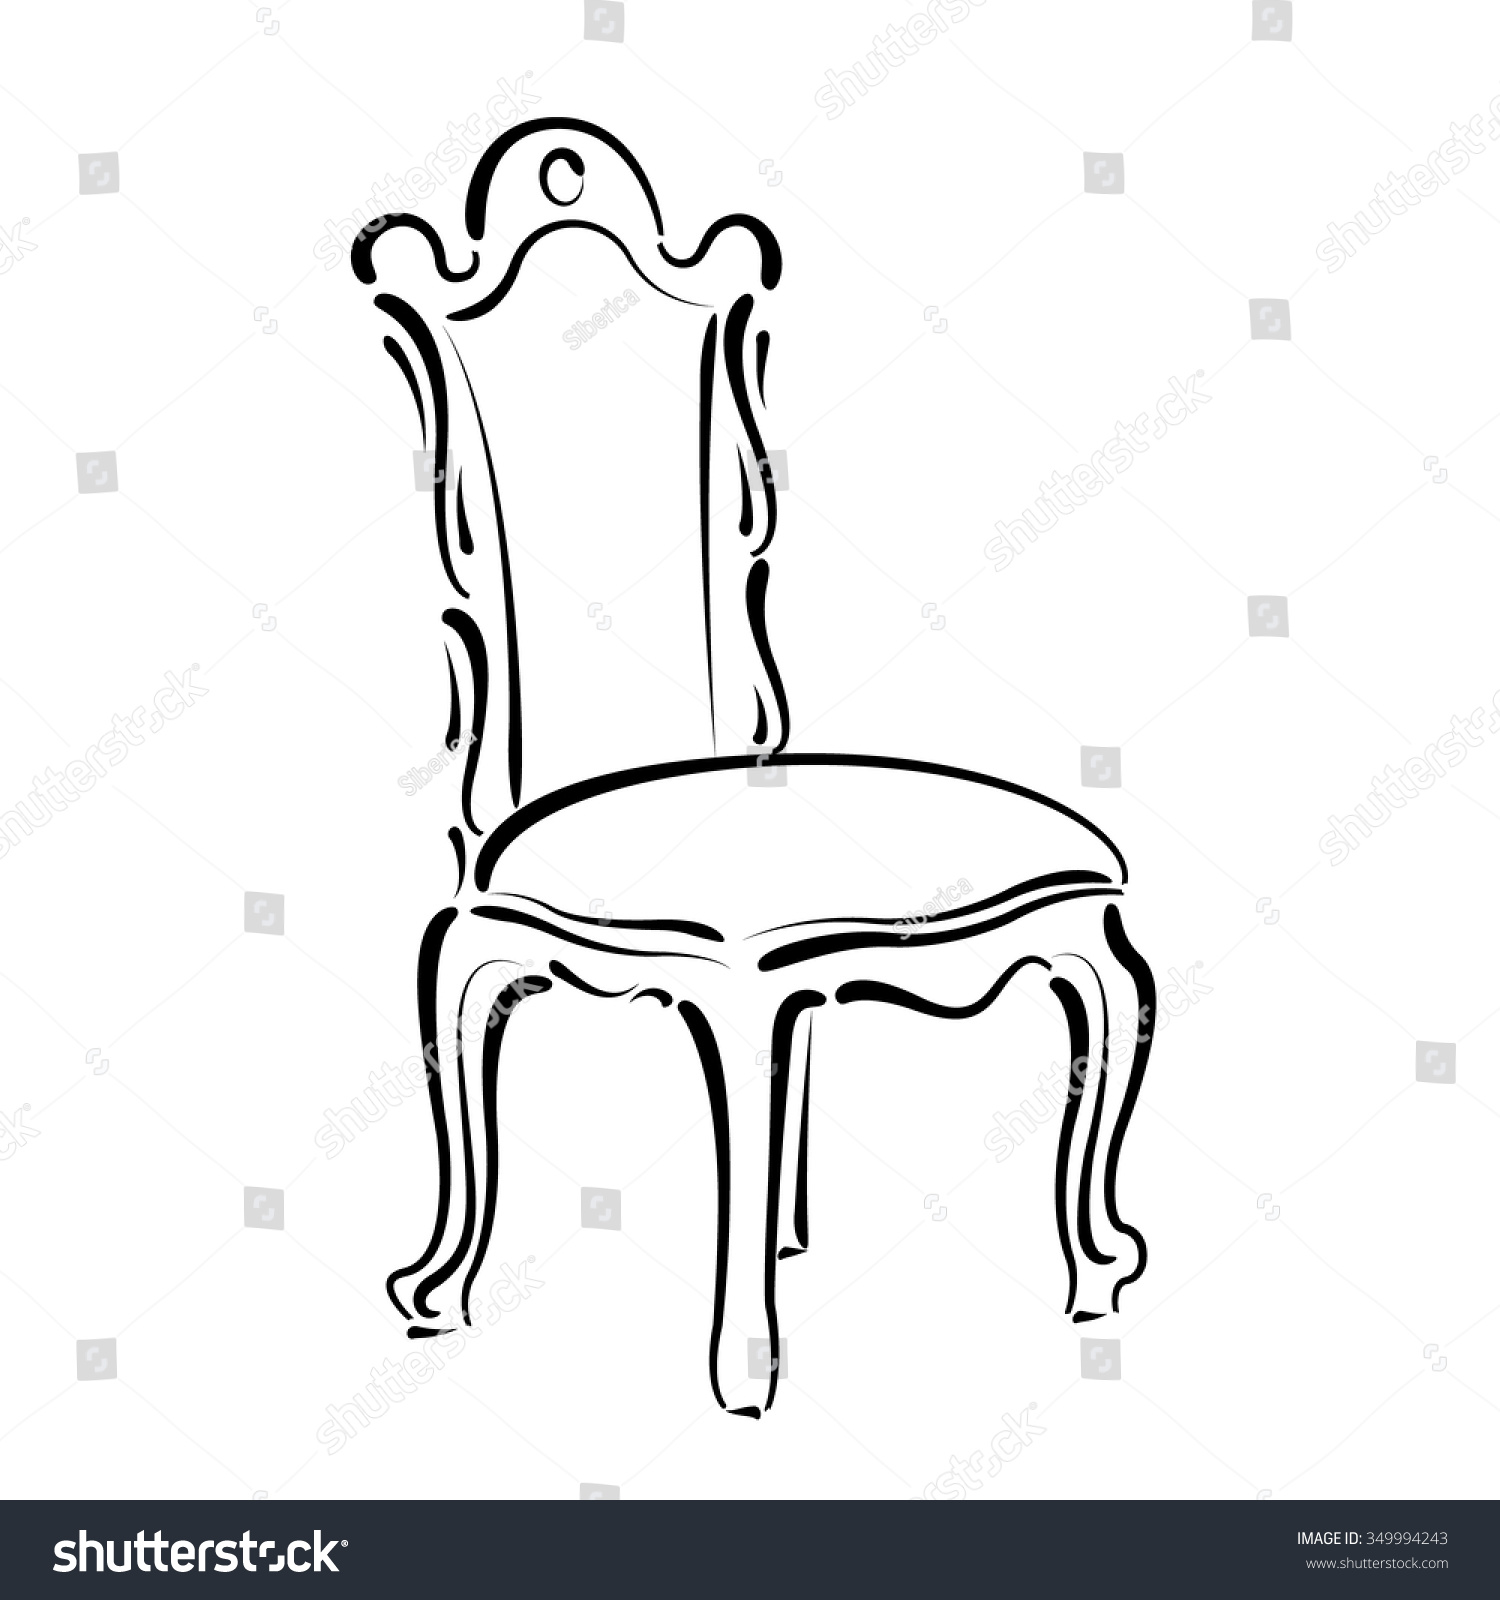 Klismos chair drawing - Chair Sketch Chair Sketch Vector Illustration With Designs Chair Sketch